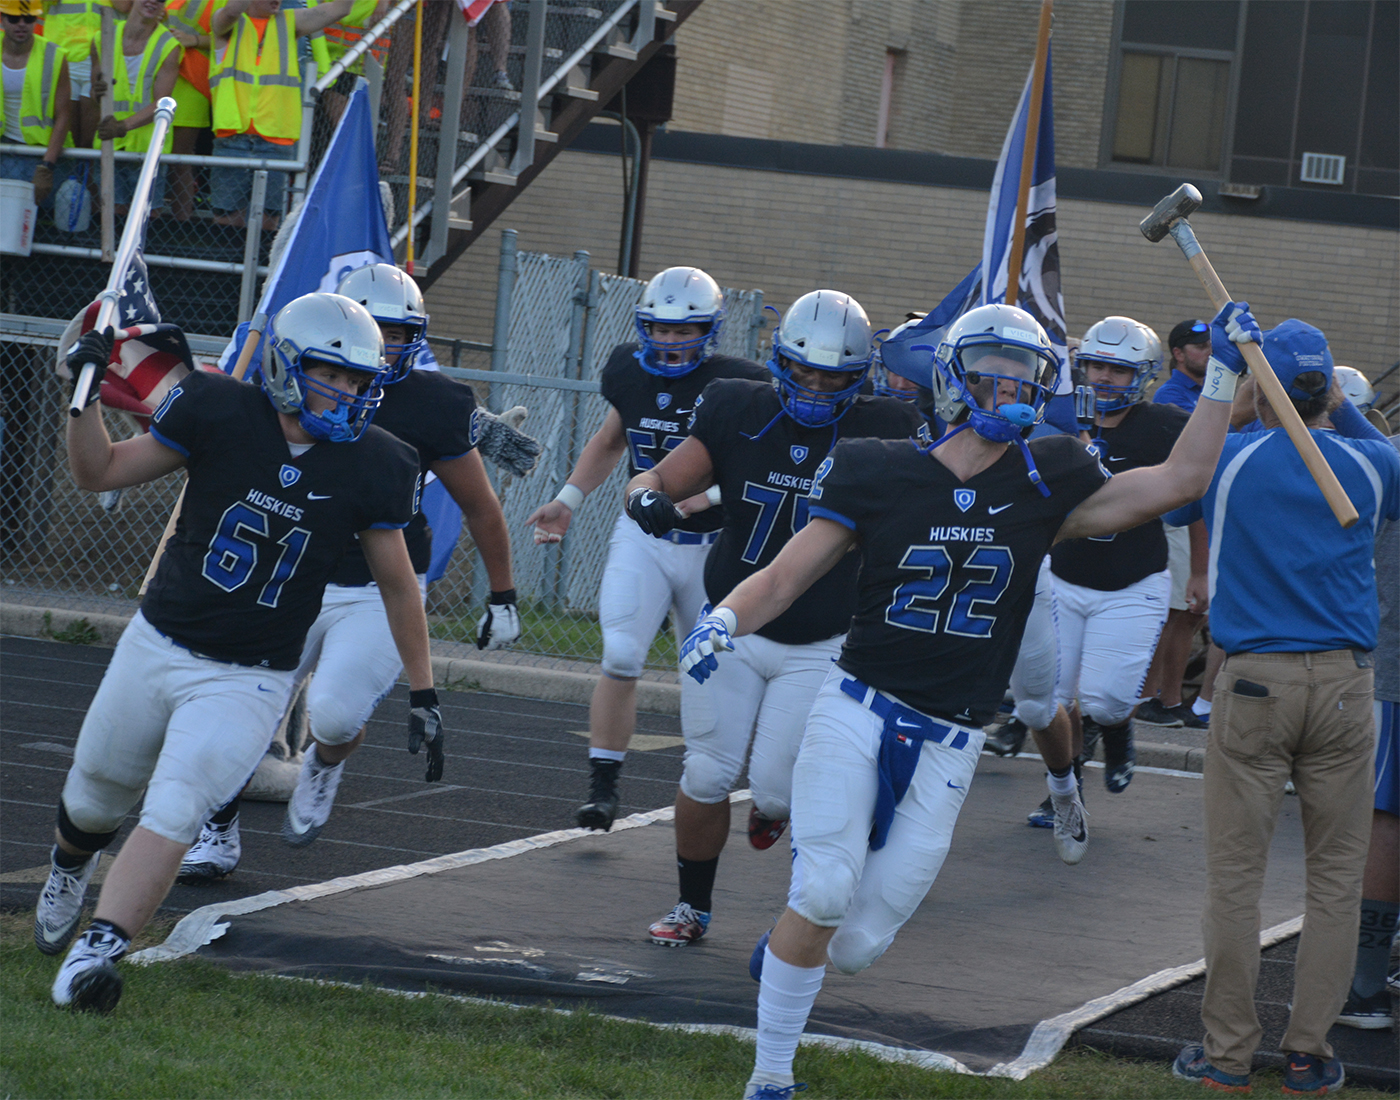 OHS Huskies run out onto the field